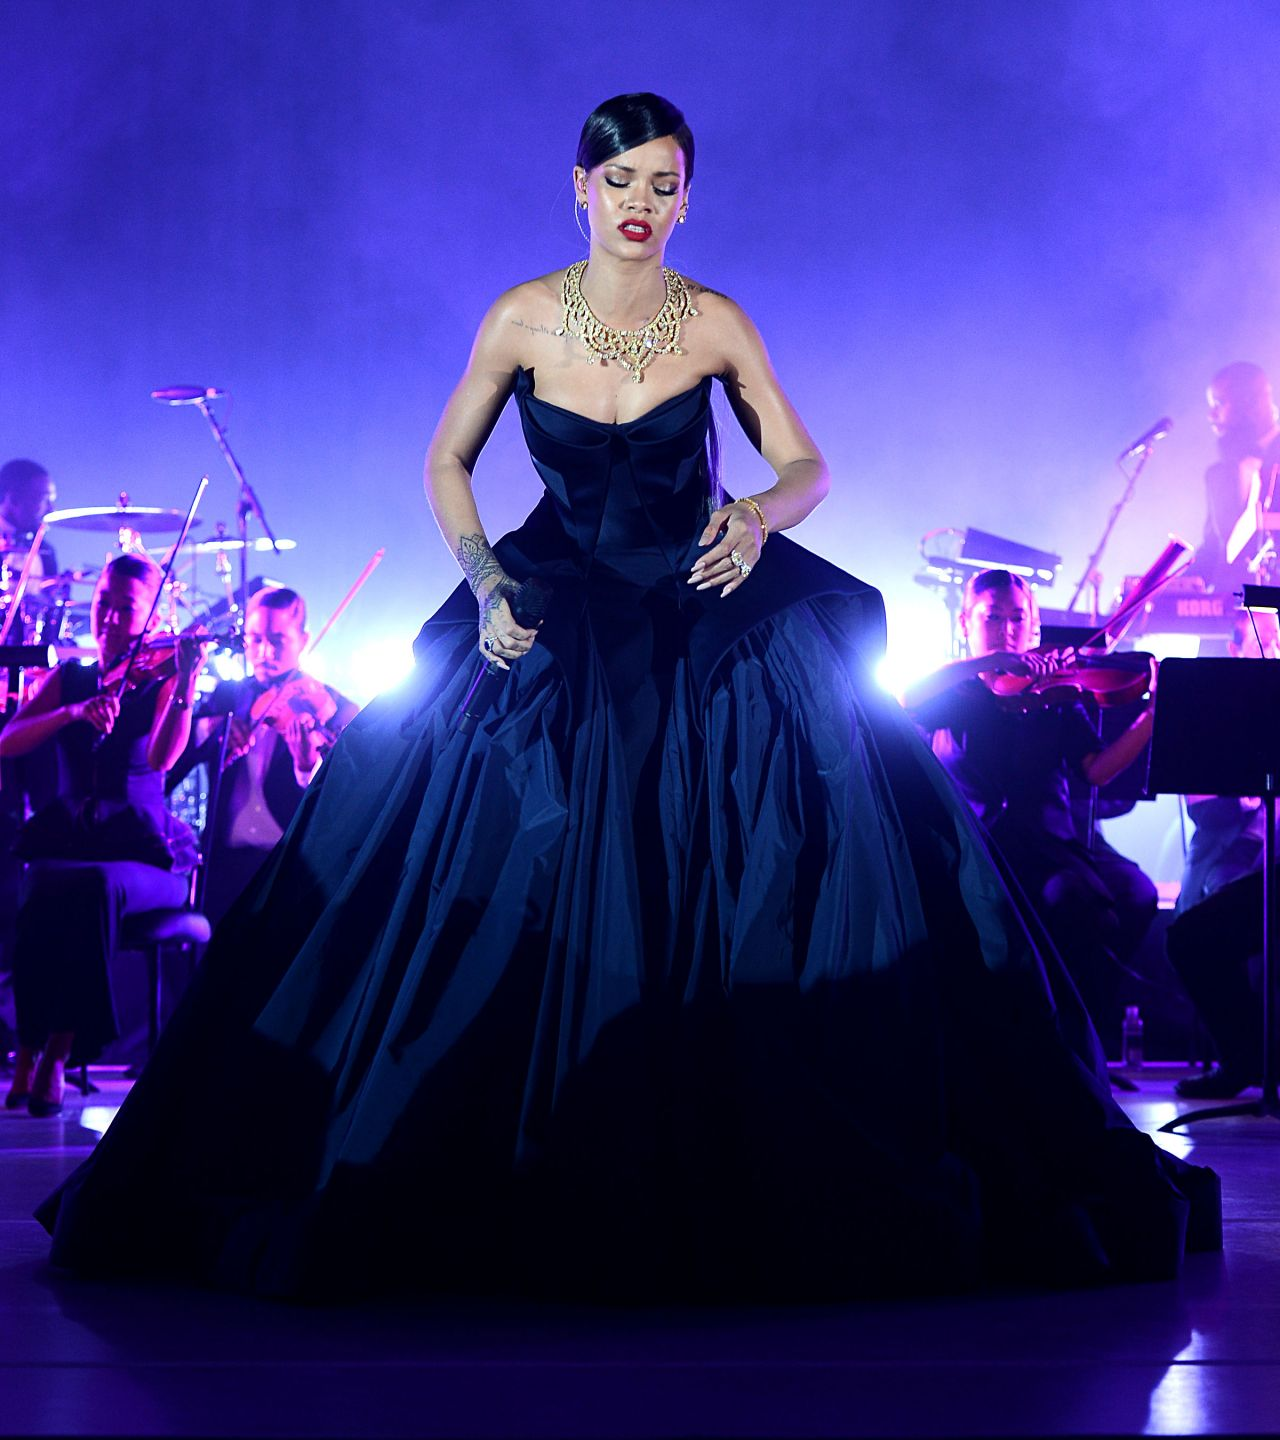 rihanna-performs-live-at-the-clara-lionel-foundation-presents-the-inaugural-diamond-ball-december-2014_1